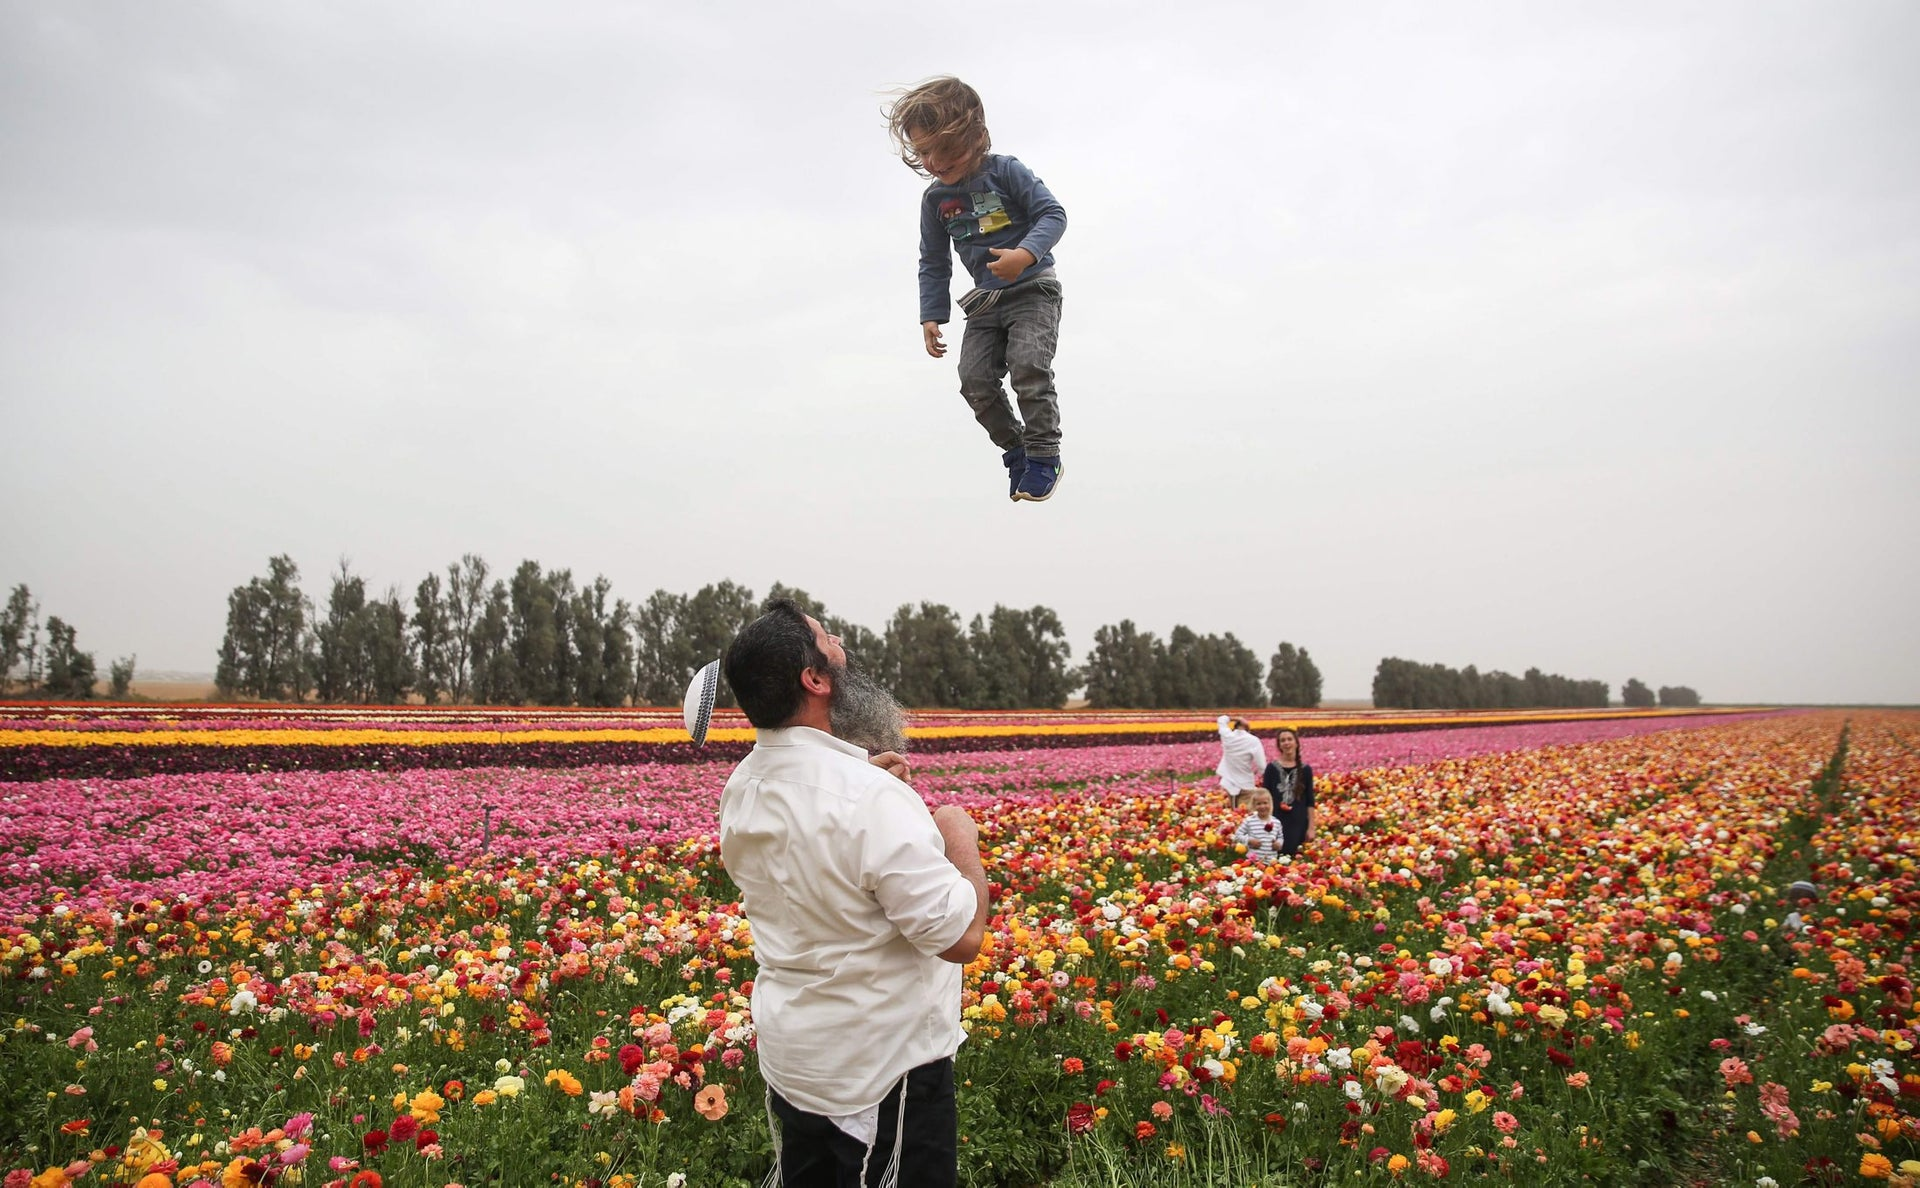 An Israeli man playfully throws a child as his kippah falls off, while enjoying the Ranunculus flowers in a field in the southern Israeli Kibbutz of Nir Yitzhak, located along the Israeli-Gaza Strip border, during the Jewish holiday of Pesach (Passover) on April 12, 2017.